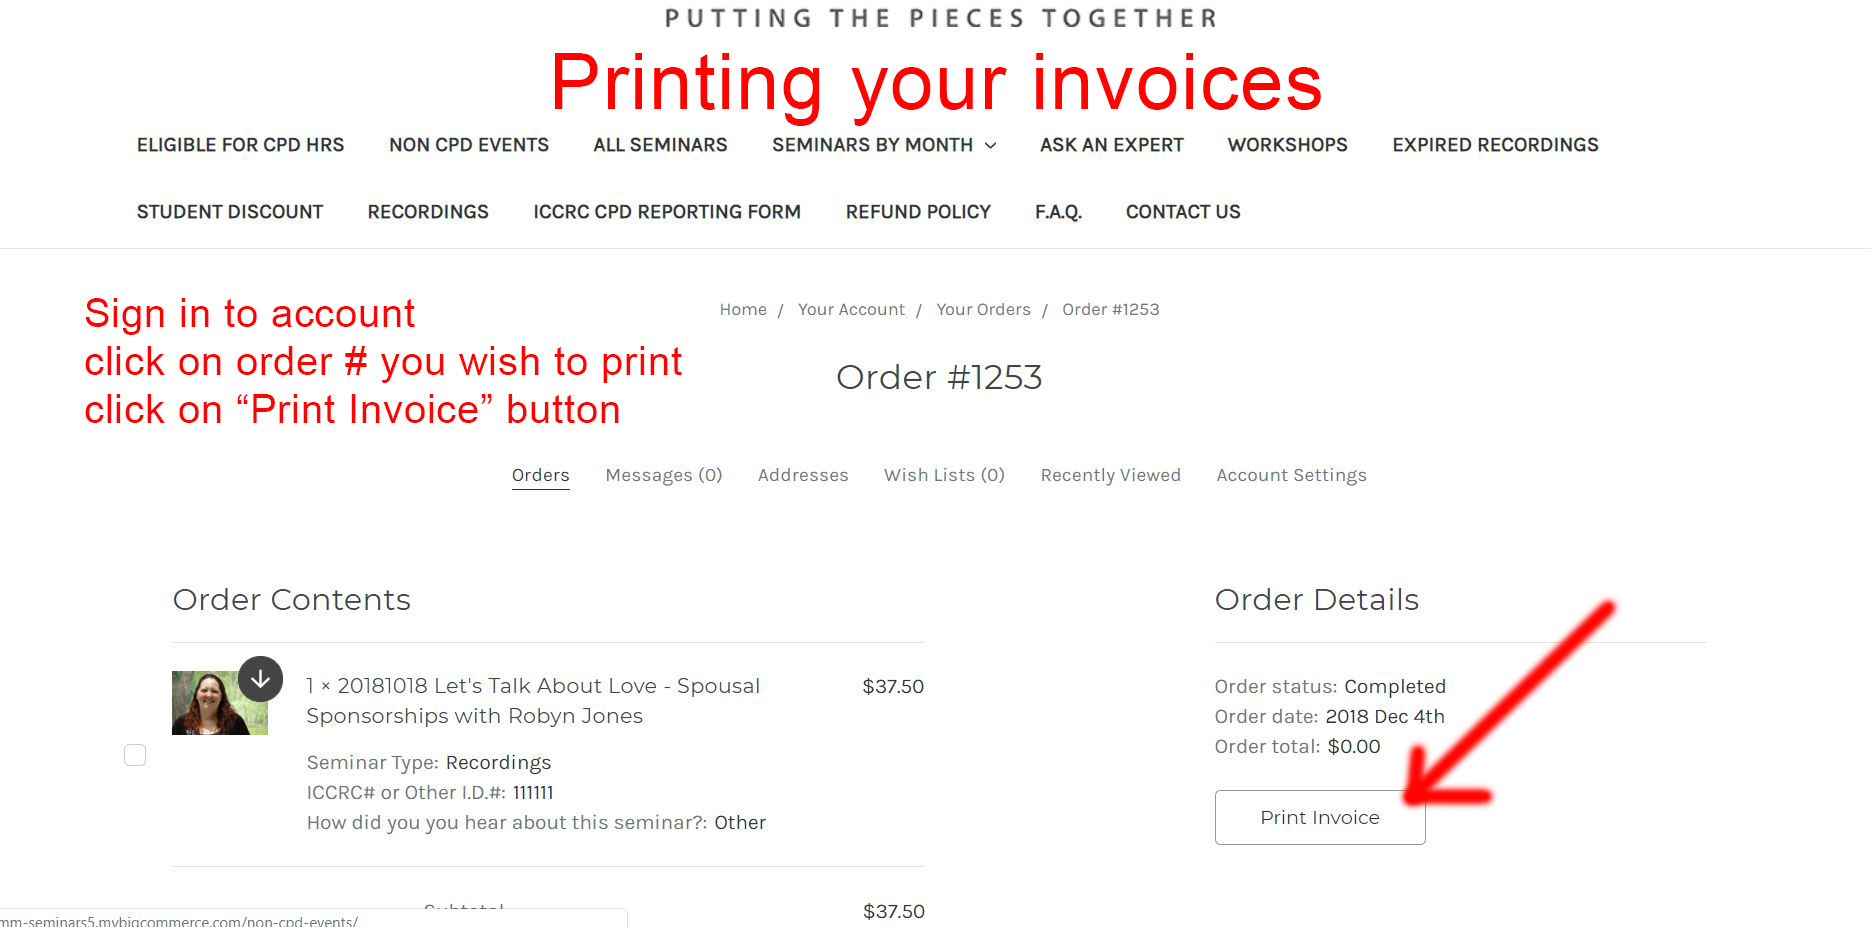 how-to-print-you-invoices.jpg